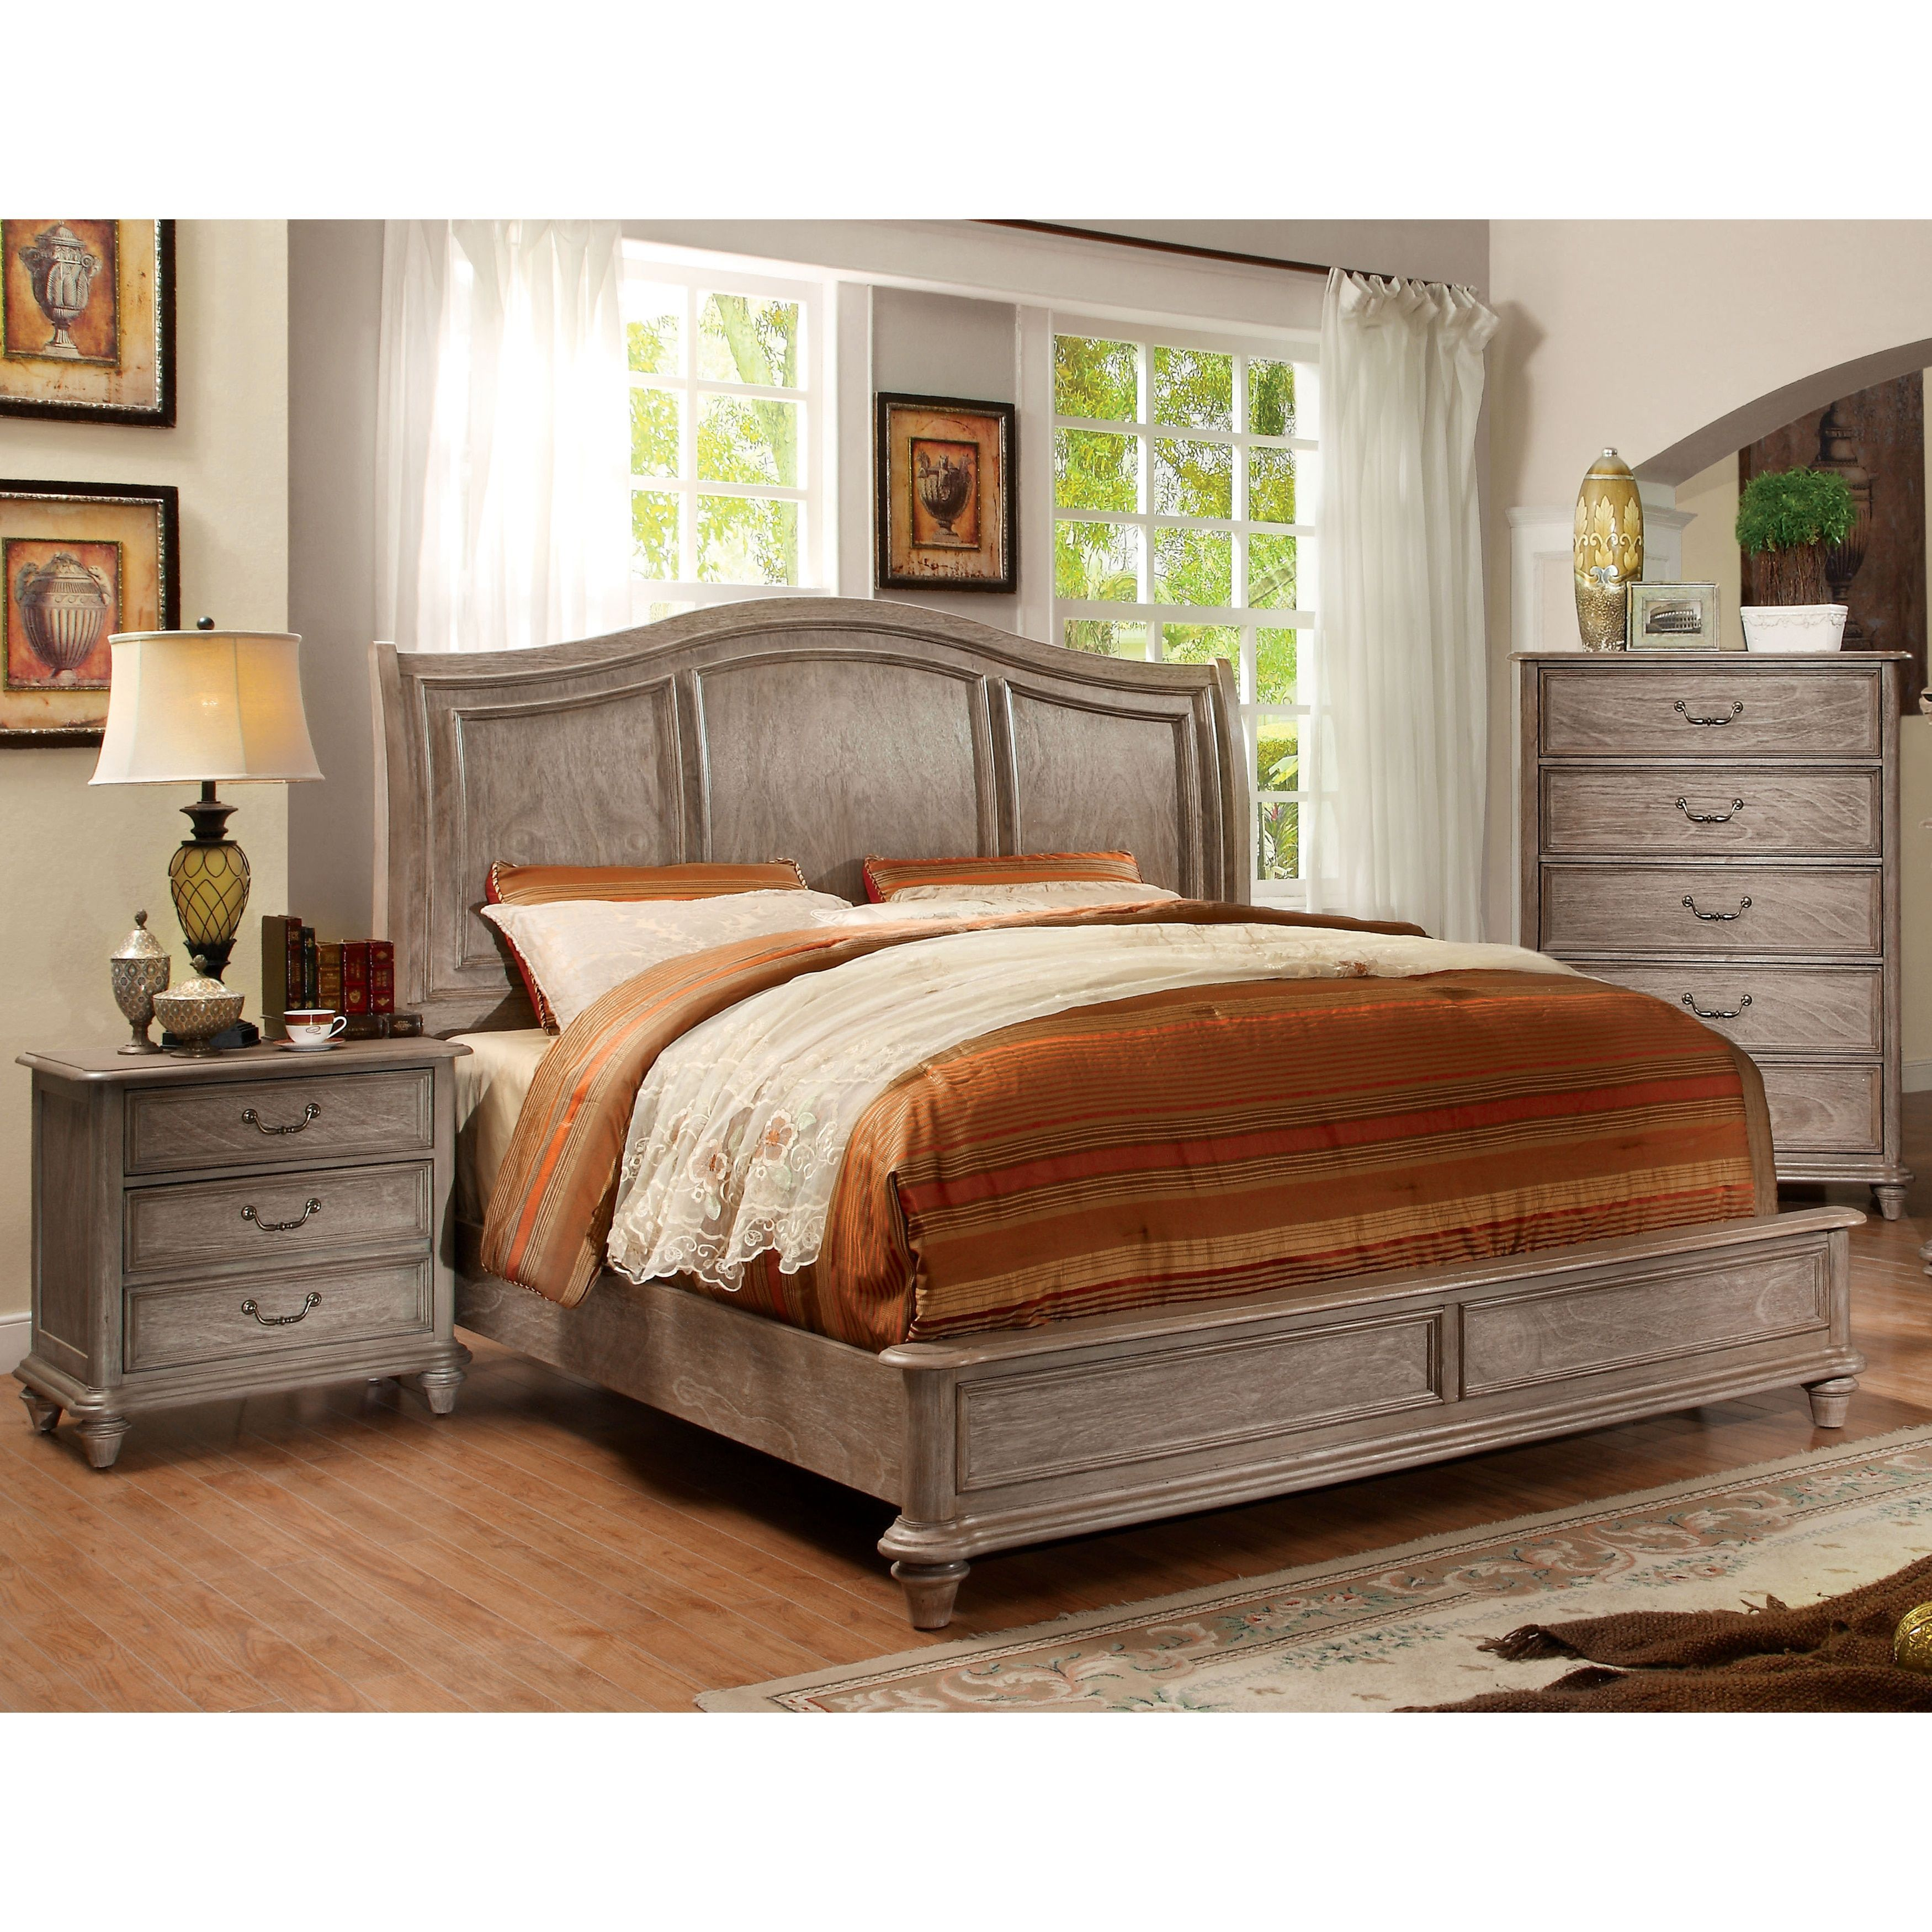 Furniture of America Minka Rustic Grey 2-piece Bed with Nightstand ...